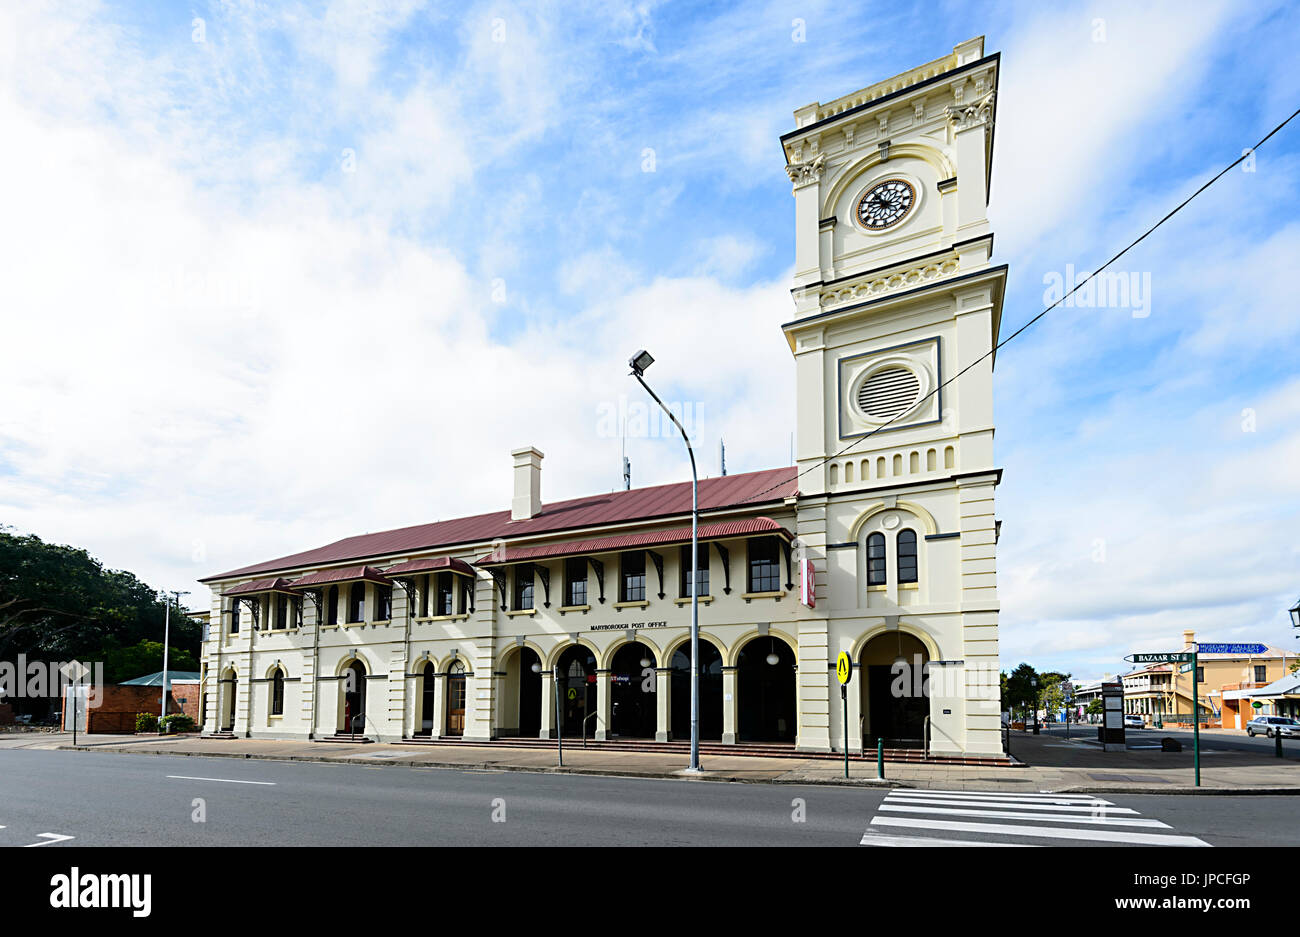 Historic Post Office building, Wharf Street, Heritage Precinct, Maryborough, Queensland, QLD, Australia - Stock Image